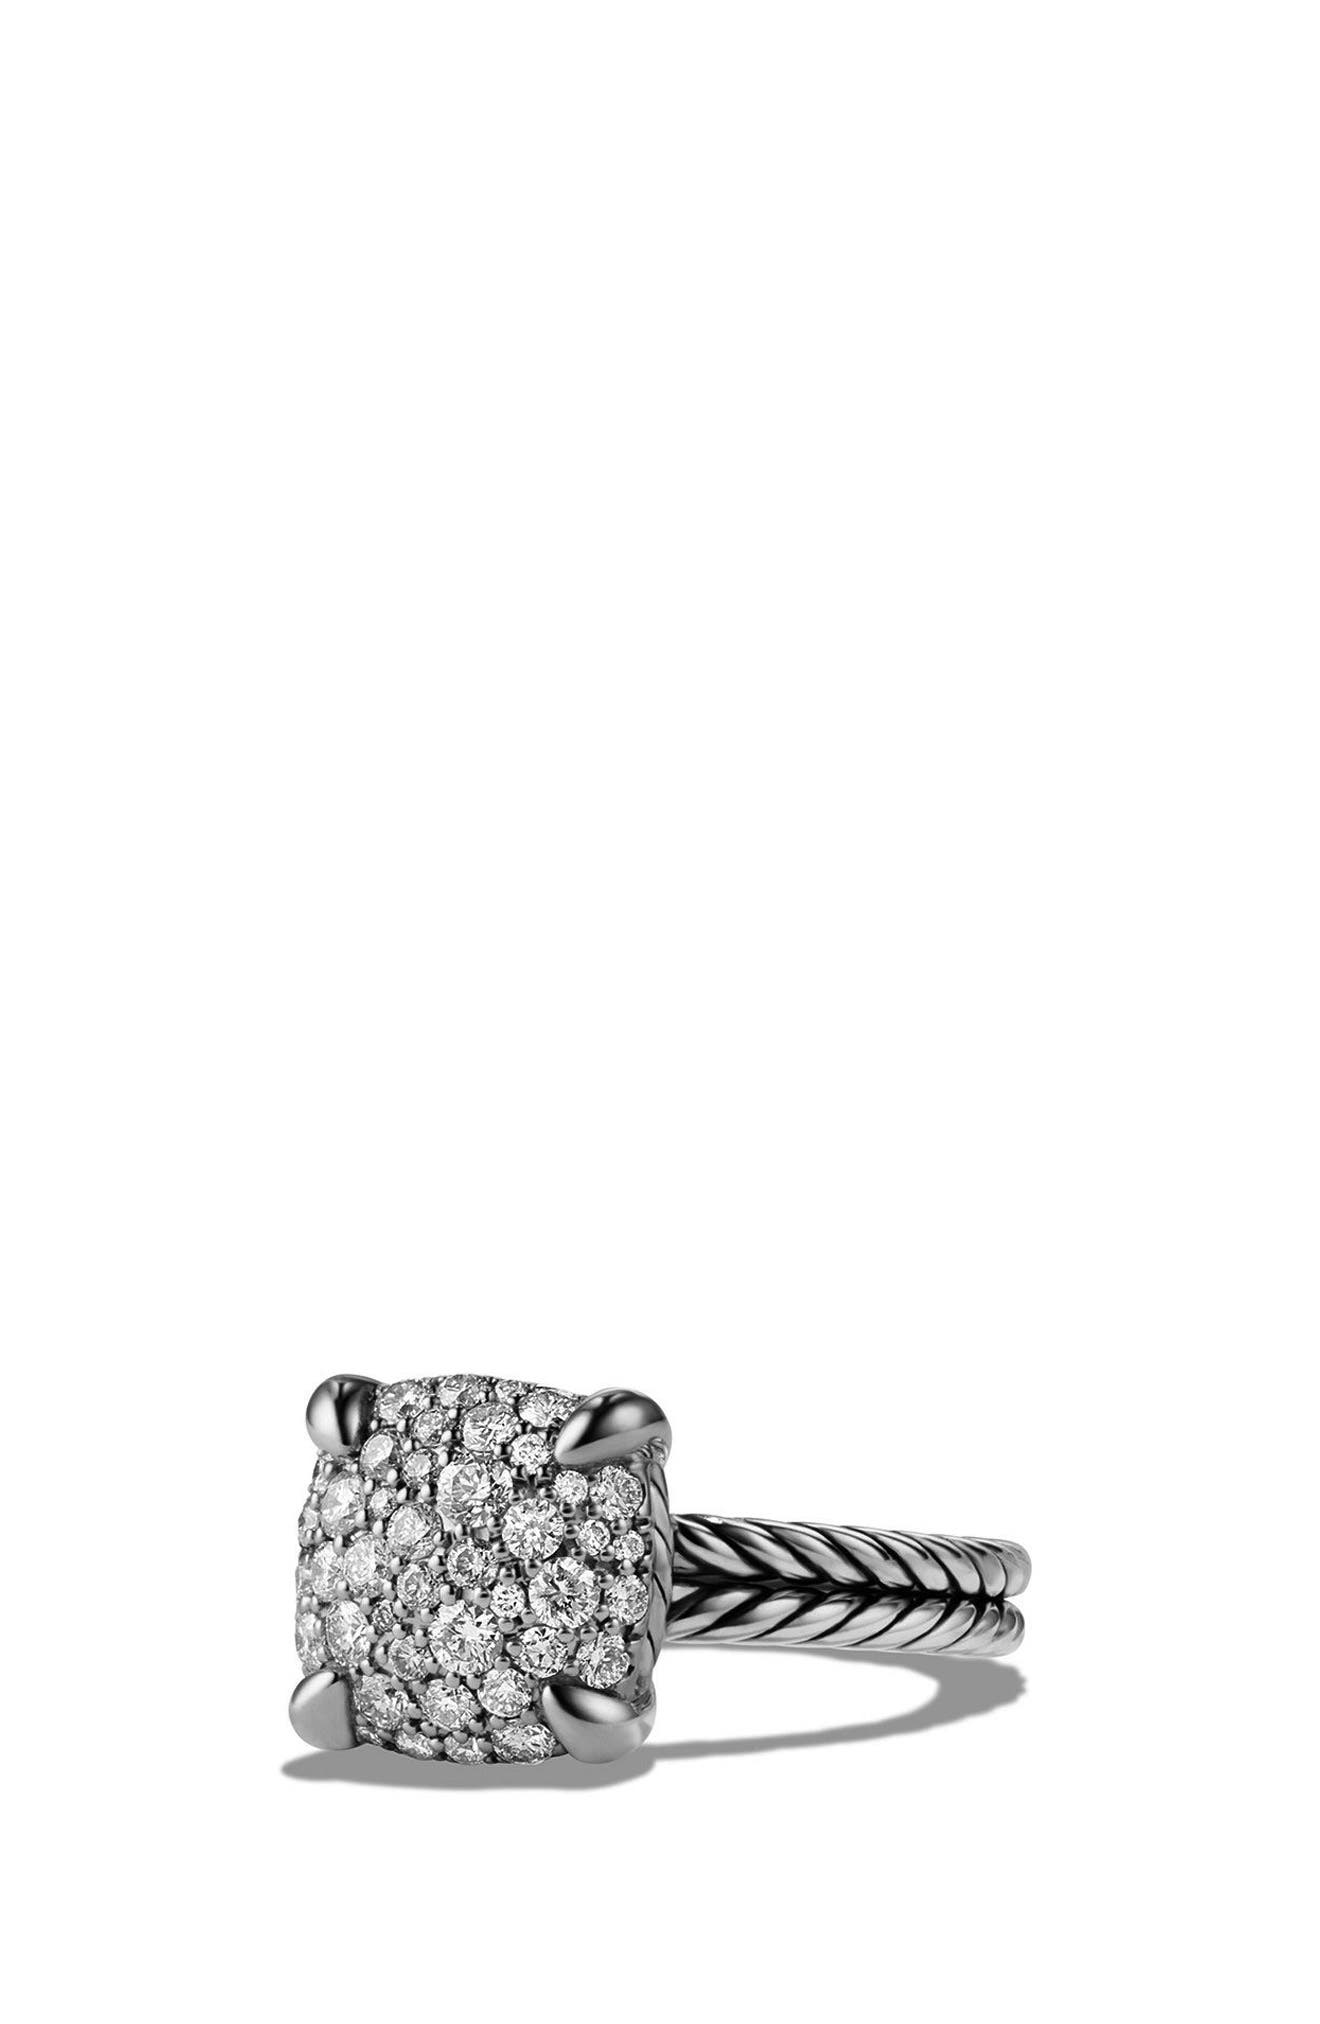 'Châtelaine' Ring with Diamonds,                             Alternate thumbnail 6, color,                             SILVER